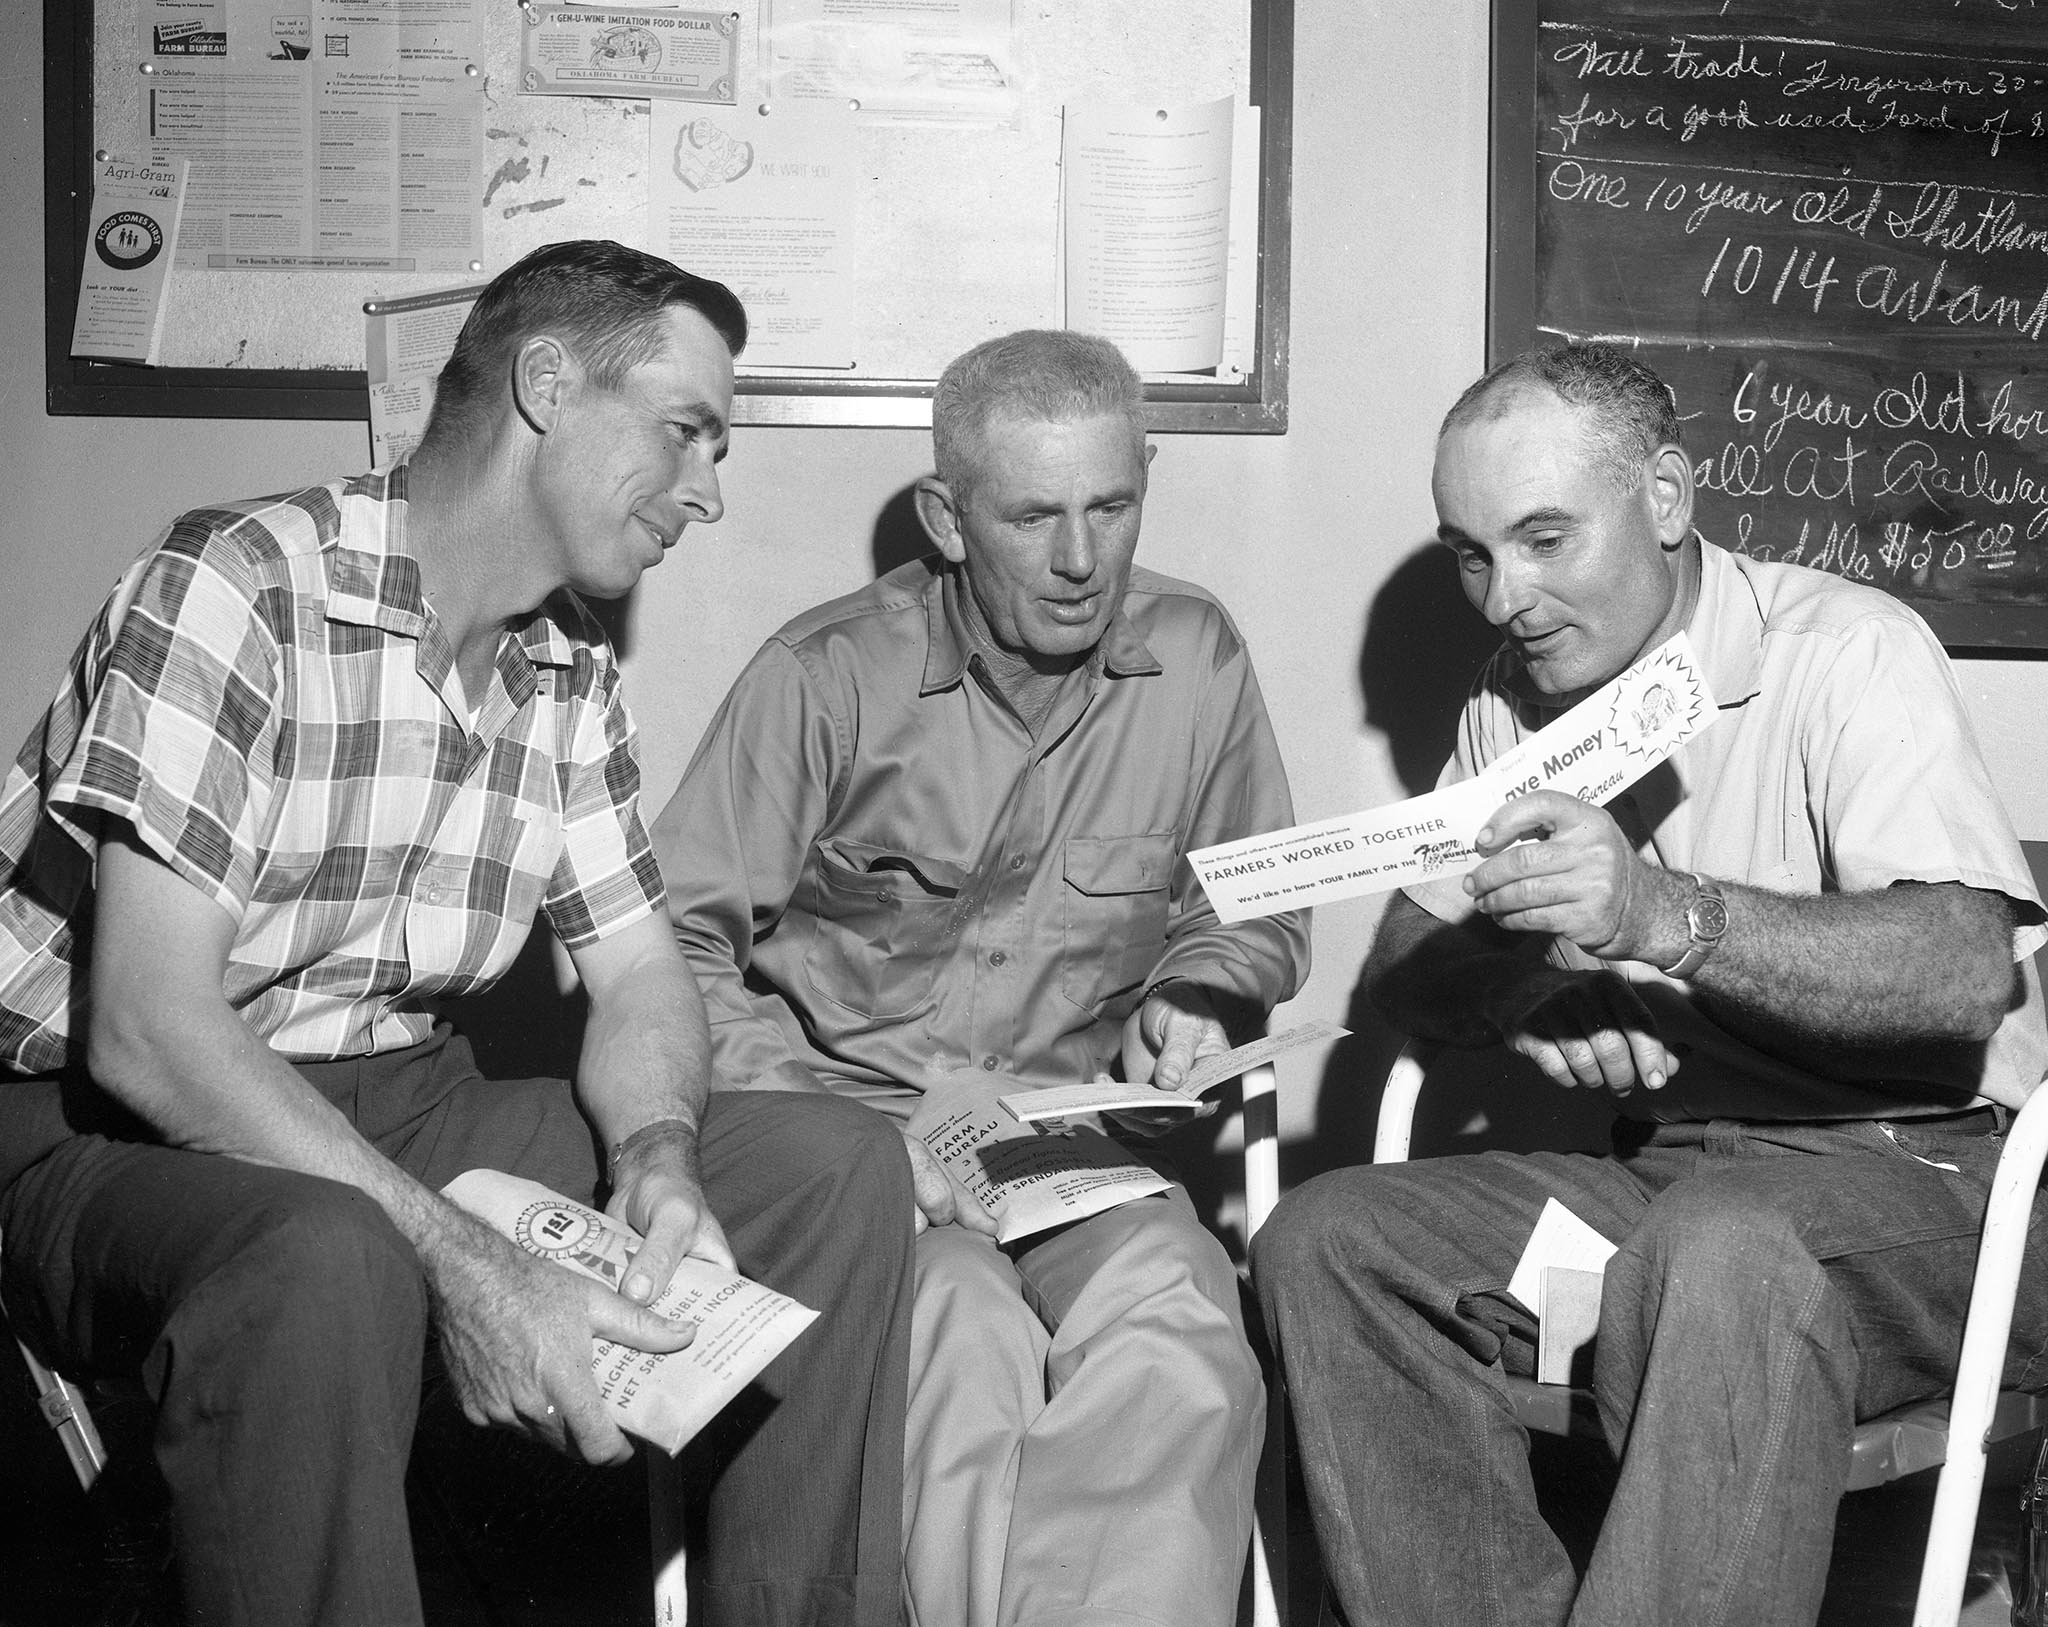 This photo was taken at a Custer County Farm Bureau membership kickoff held at the county office on October 7, 1958. Pictured are (left to right) Roy Driscoll, Custer County Farm Bureau Board member from Clinton; Wayne Foster, county board member from Weatherford; and Con Burgtorf, Membership Chairman from Custer City.